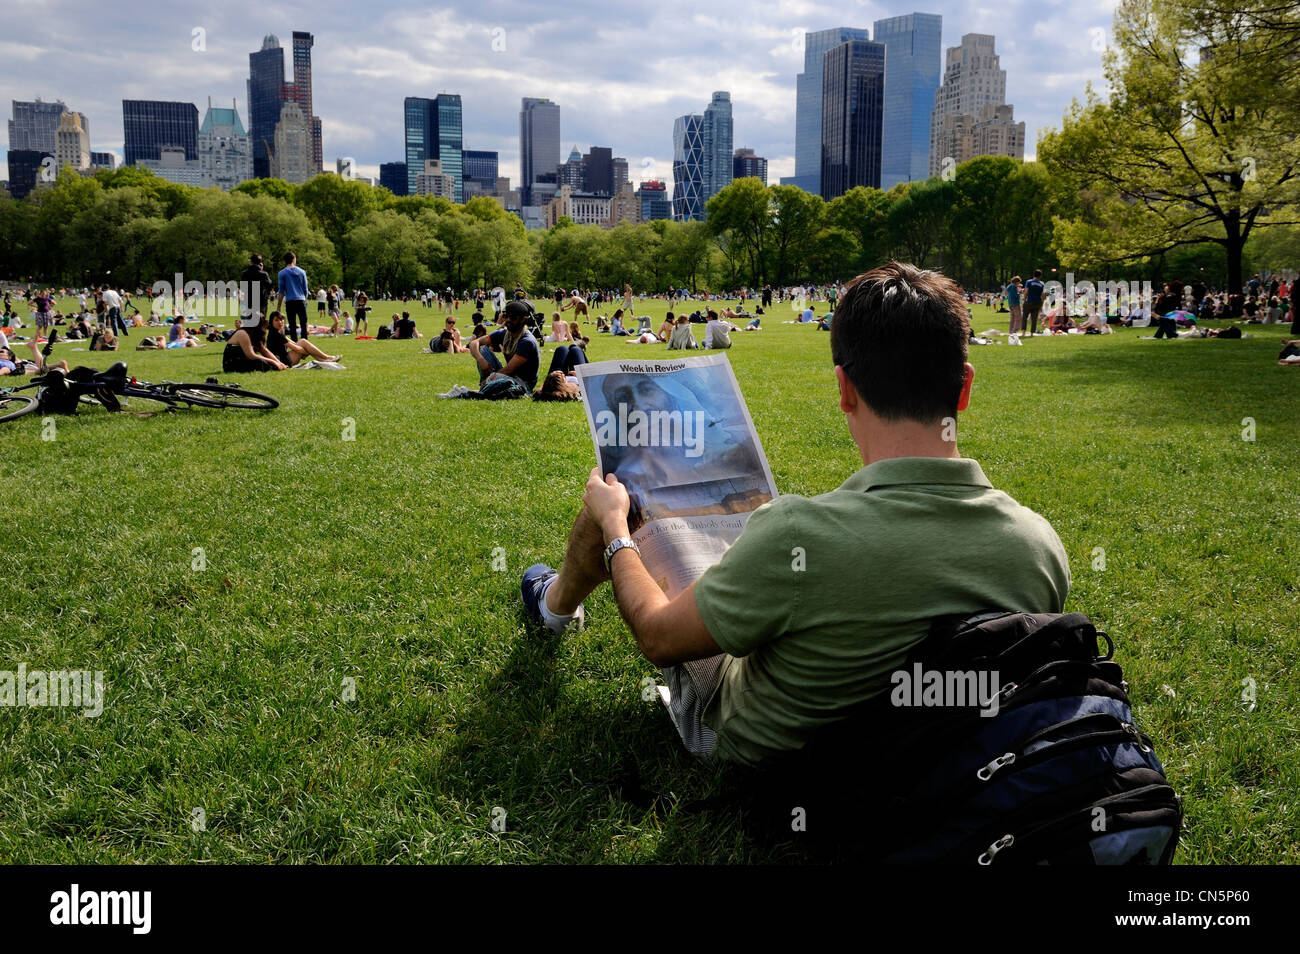 United States, New York City, Manhattan, Central Park, Sundays on The Sheep Meadow, announcement of the death of - Stock Image